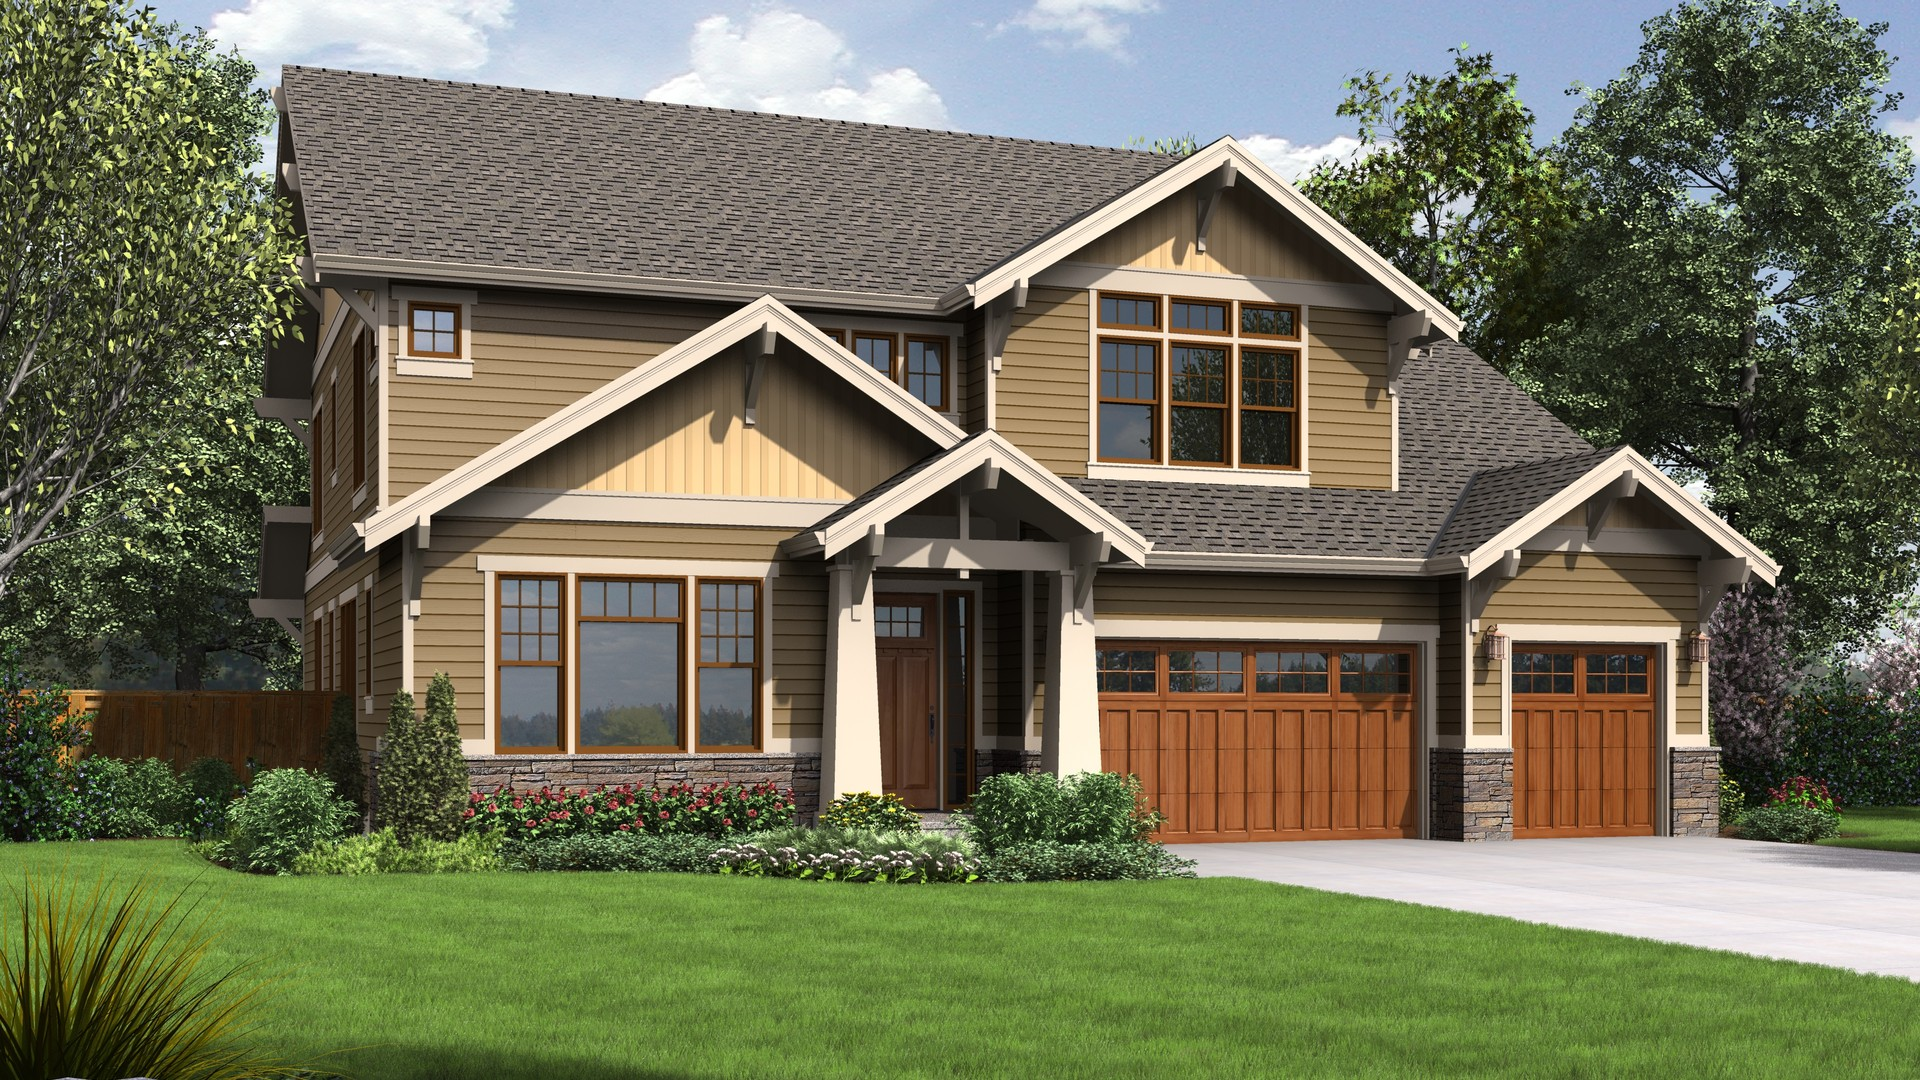 Craftsman house plan 2469 the tualatin 4177 sqft 5 for 5 bedroom craftsman house plans